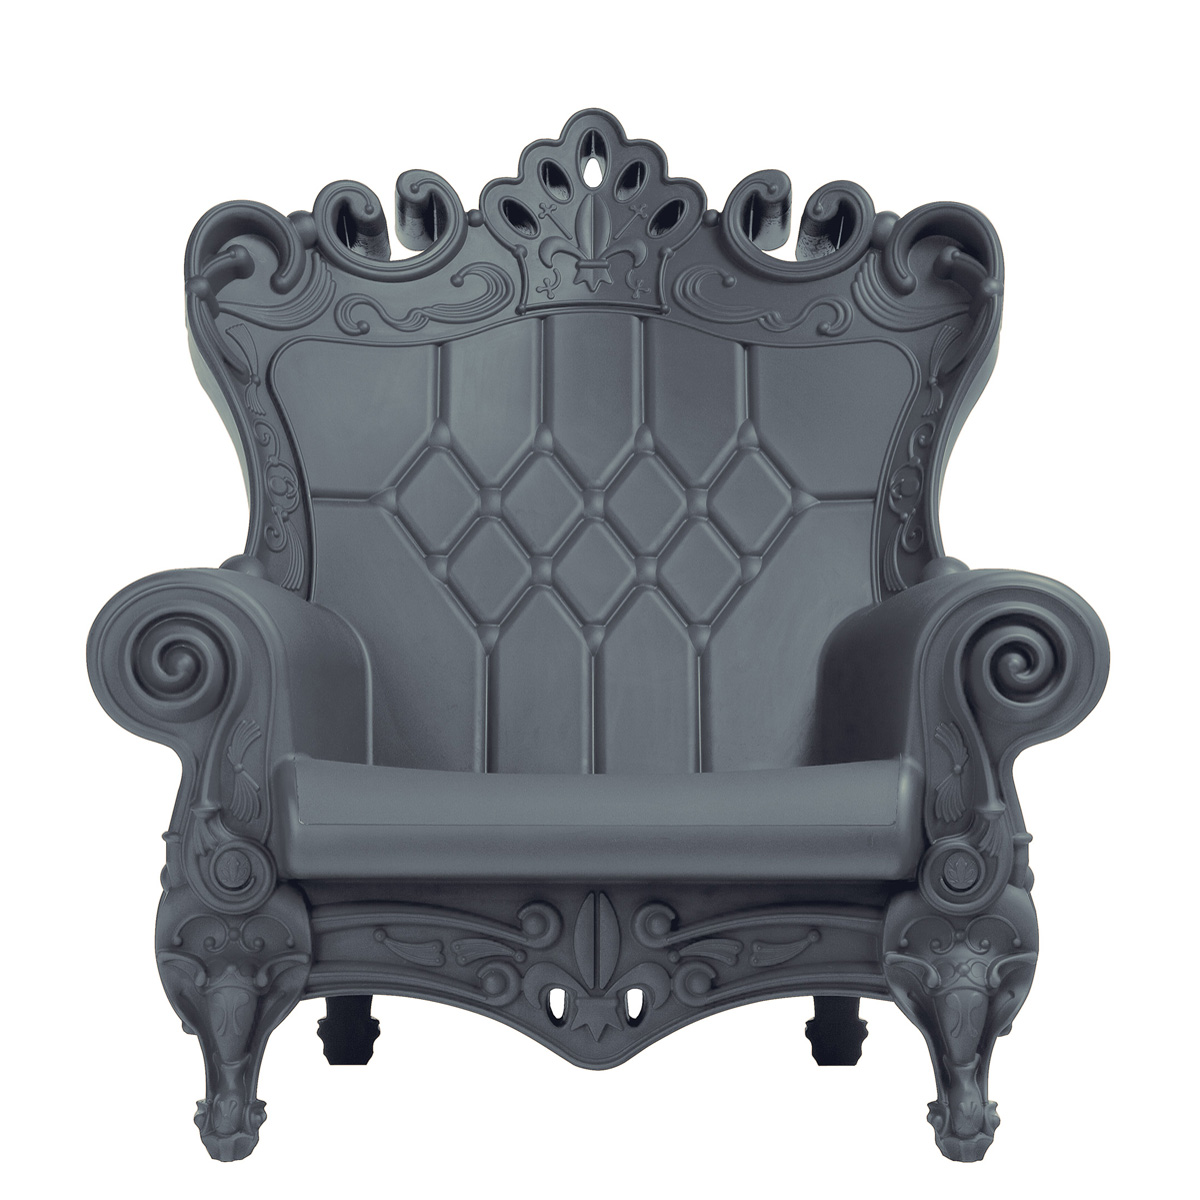 Queen of Love lounge chair from Slide